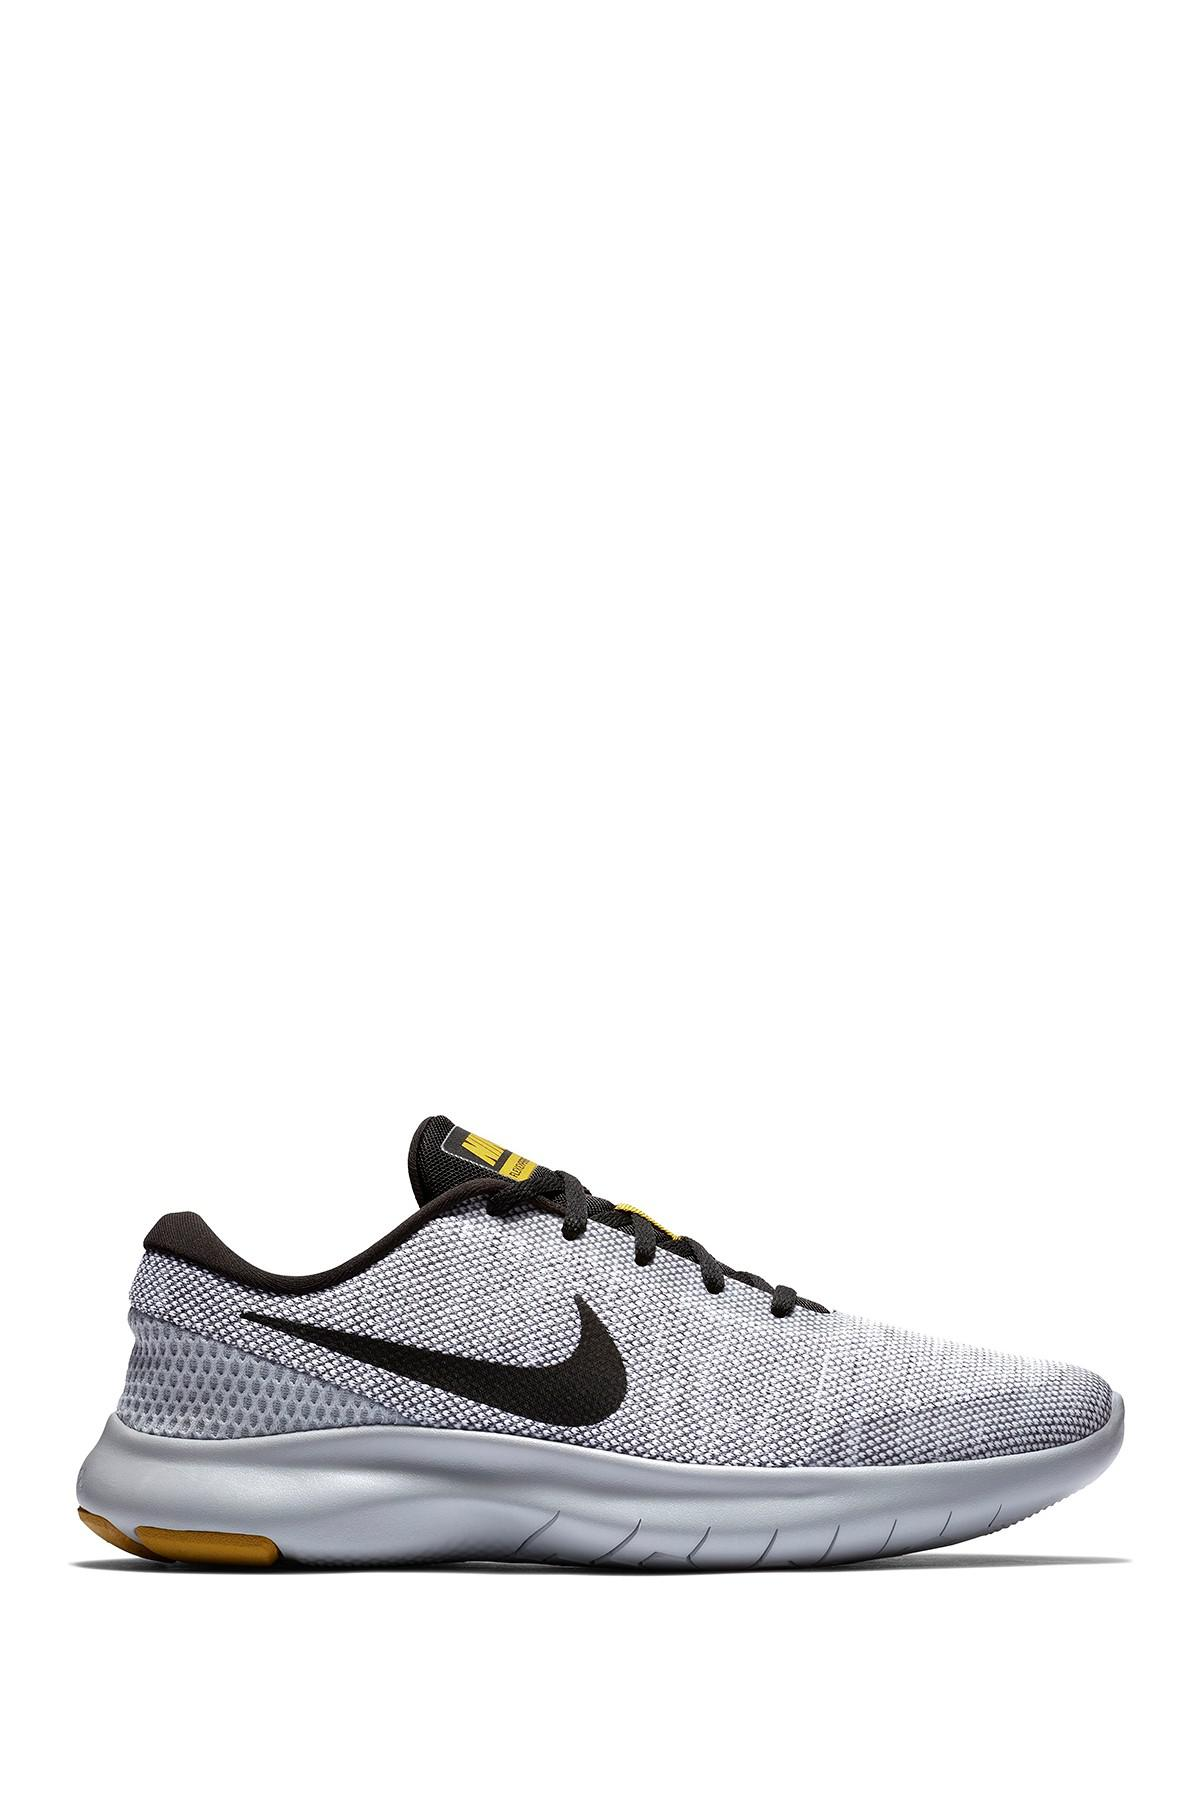 d014ccf2ef3c2 Nike - Black Flex Experience Rn 7 Sneaker for Men - Lyst. View fullscreen